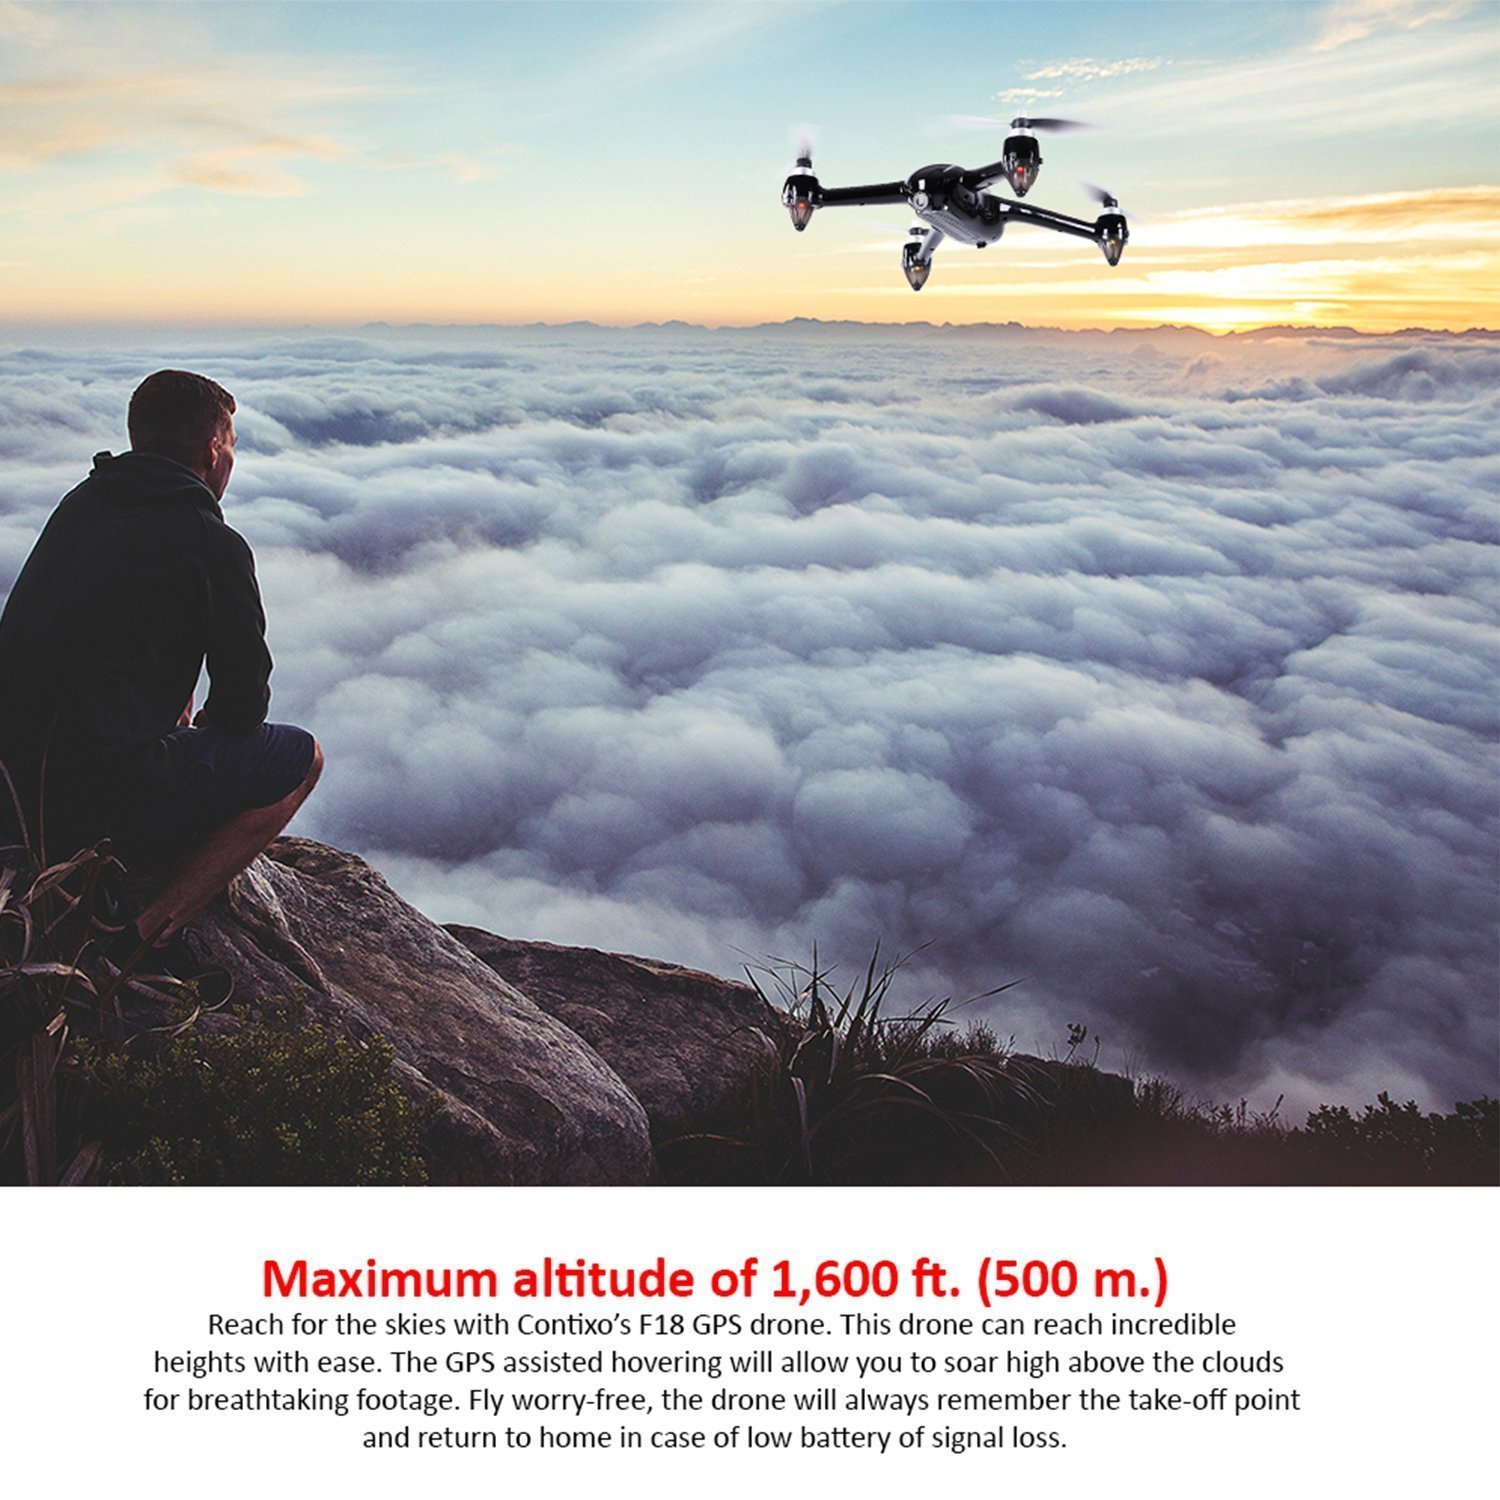 Holiday Special! Contixo F18 Advanced GPS Assisted RC Quadcopter 1080P HD Live FPV 5GHz Wifi Video Camera Drone Smart RTH Hovering Brushless Motors-Carrying Back Pack $50 Value Best Gift For Christmas by Contixo (Image #6)